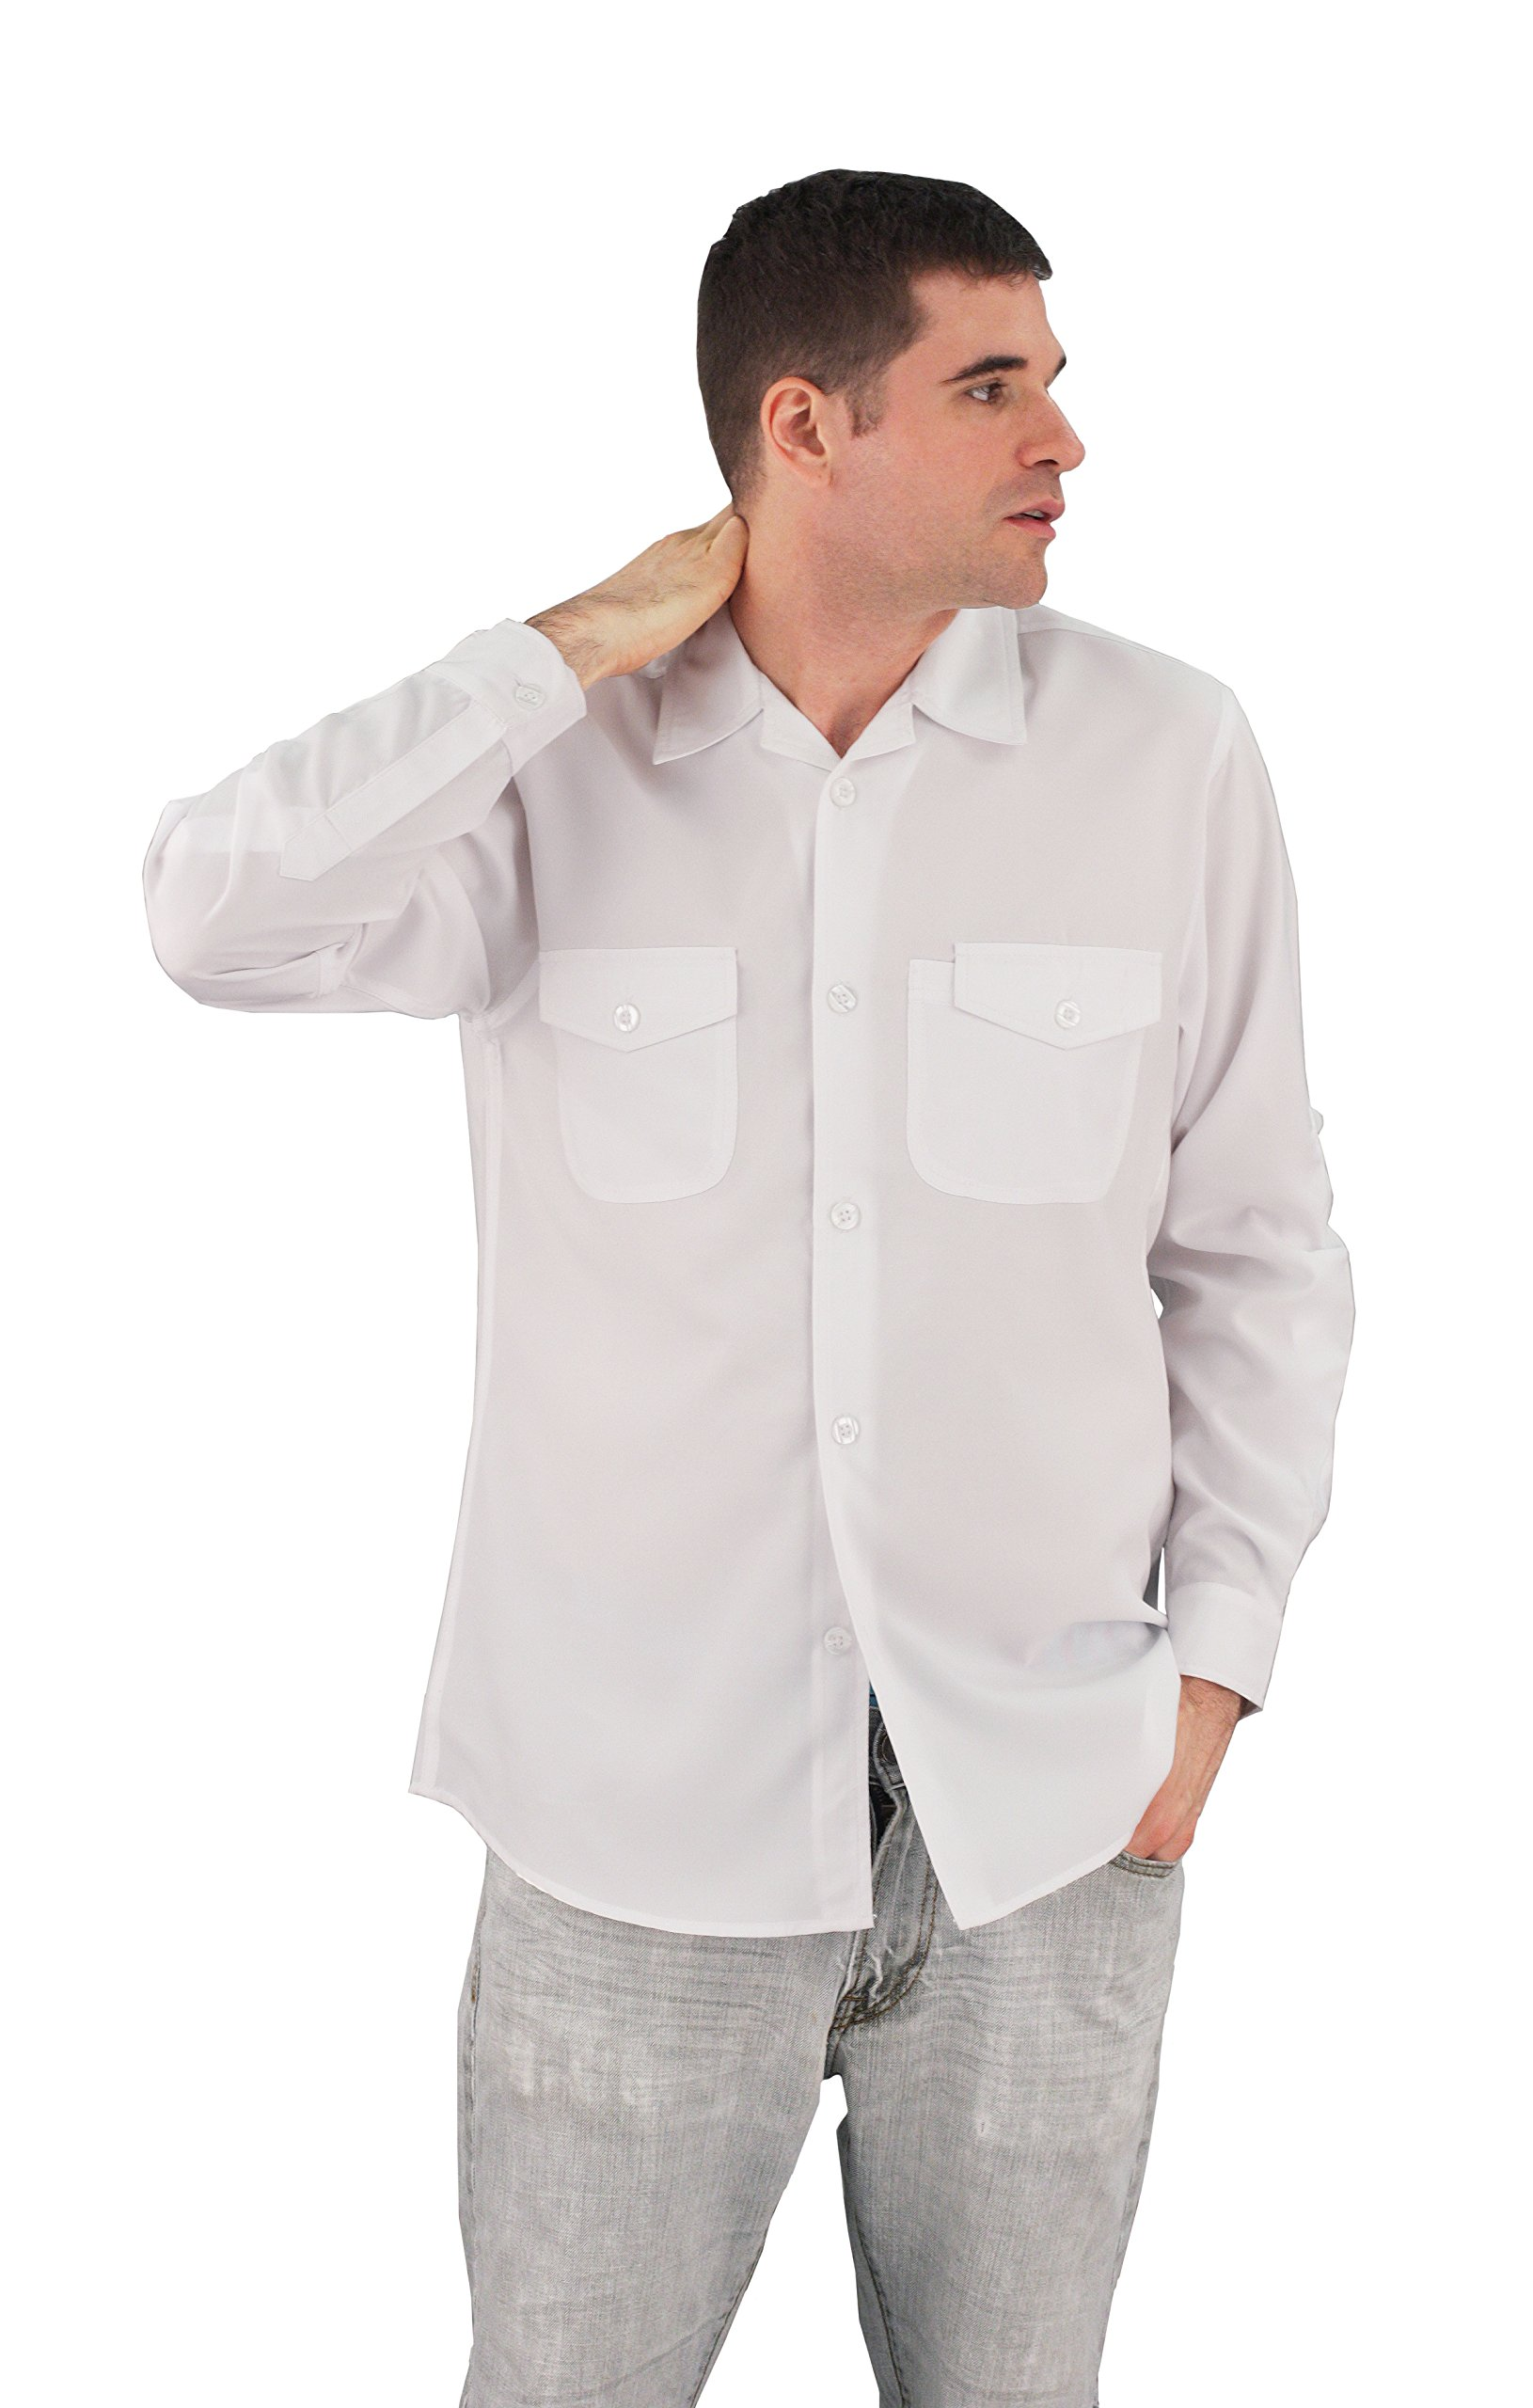 ASD Living Zanzibar Long Sleeve Dry Fit Server Waitstaff Shirt, X-Large, White